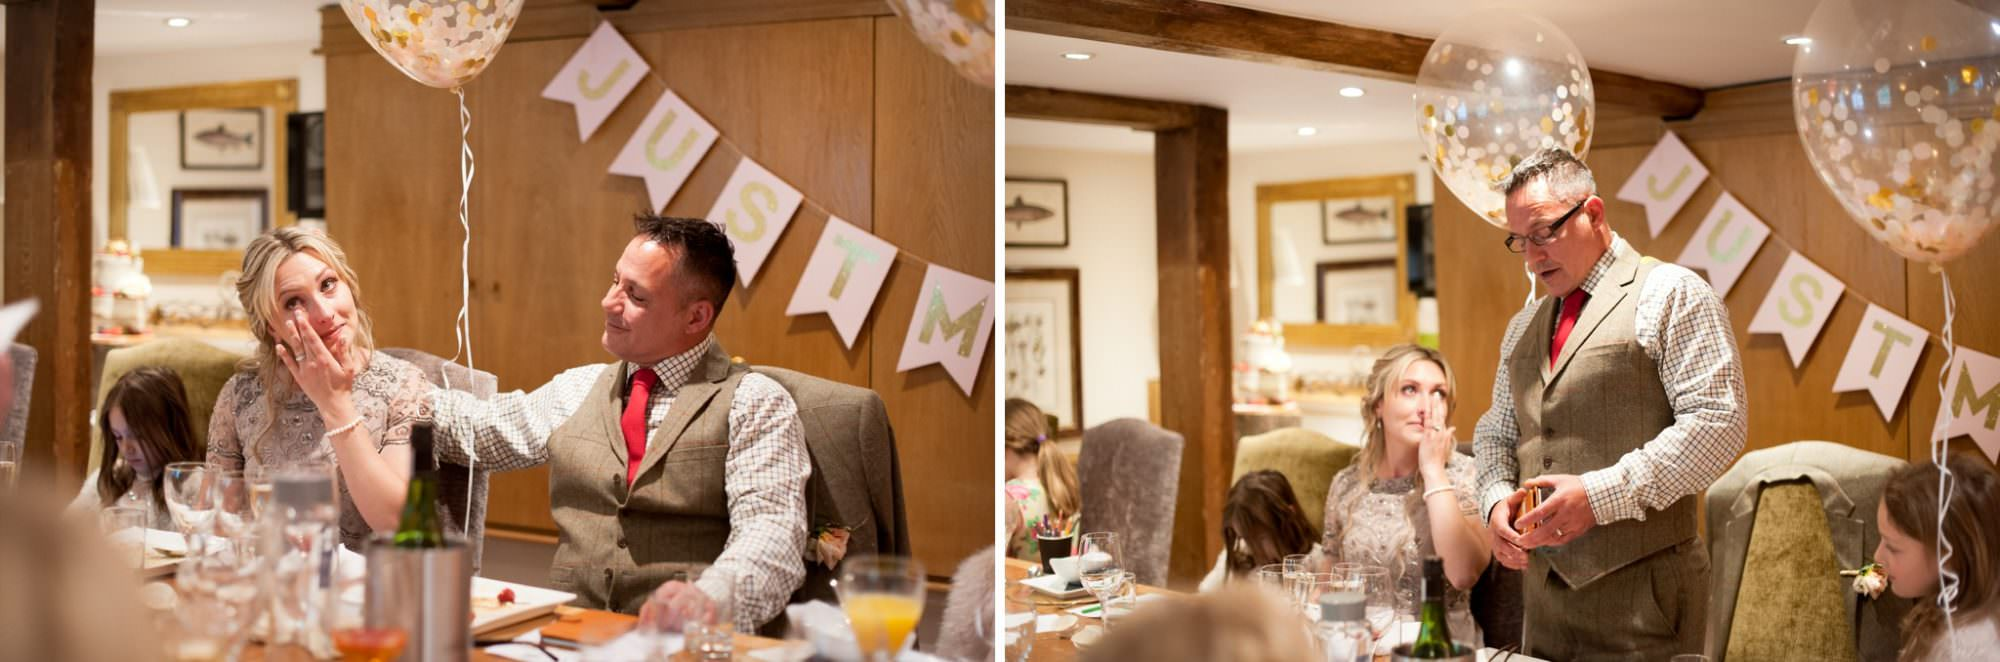 Gordleton Mill Wedding Speeches